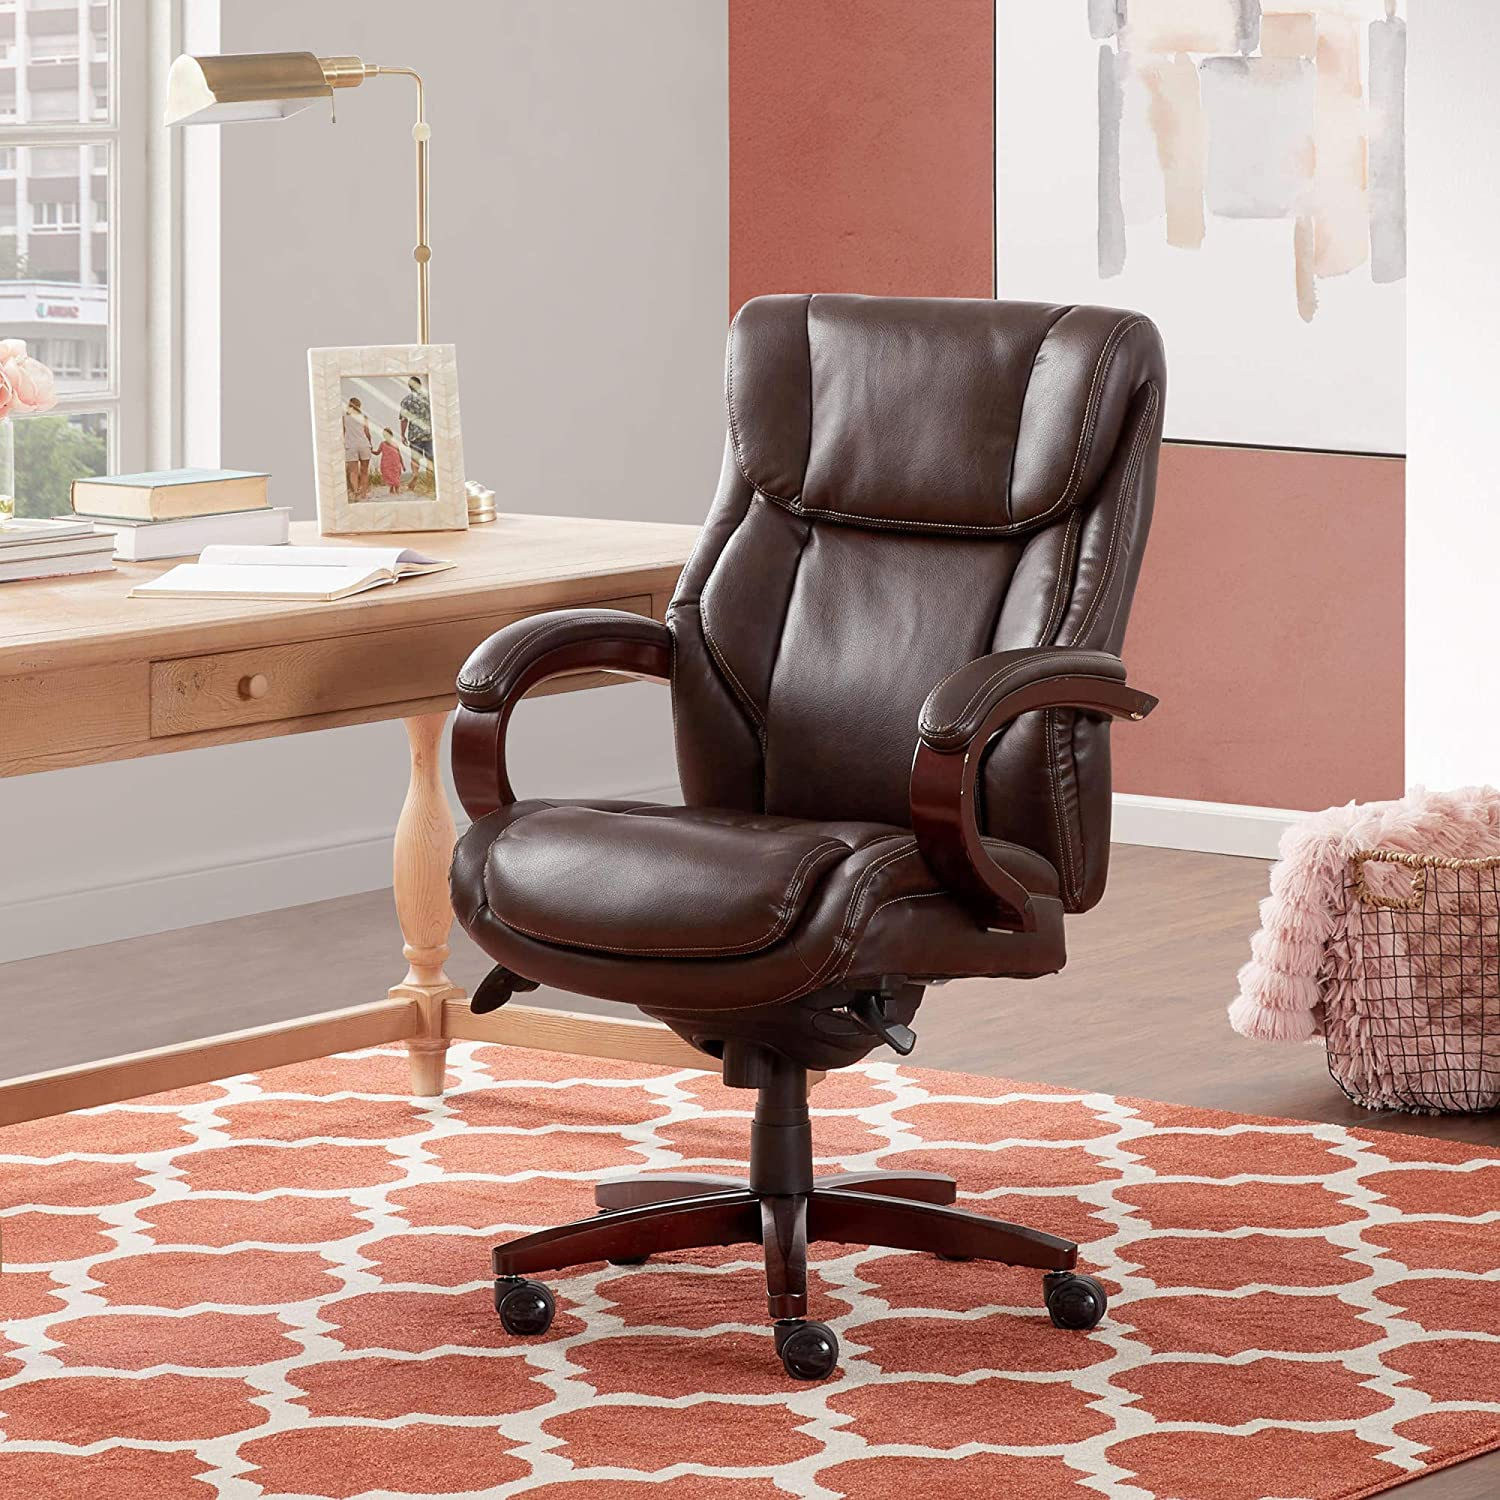 La-Z-Boy Bellamy Executive Bonded Leather Office Chair – Coffee Brown